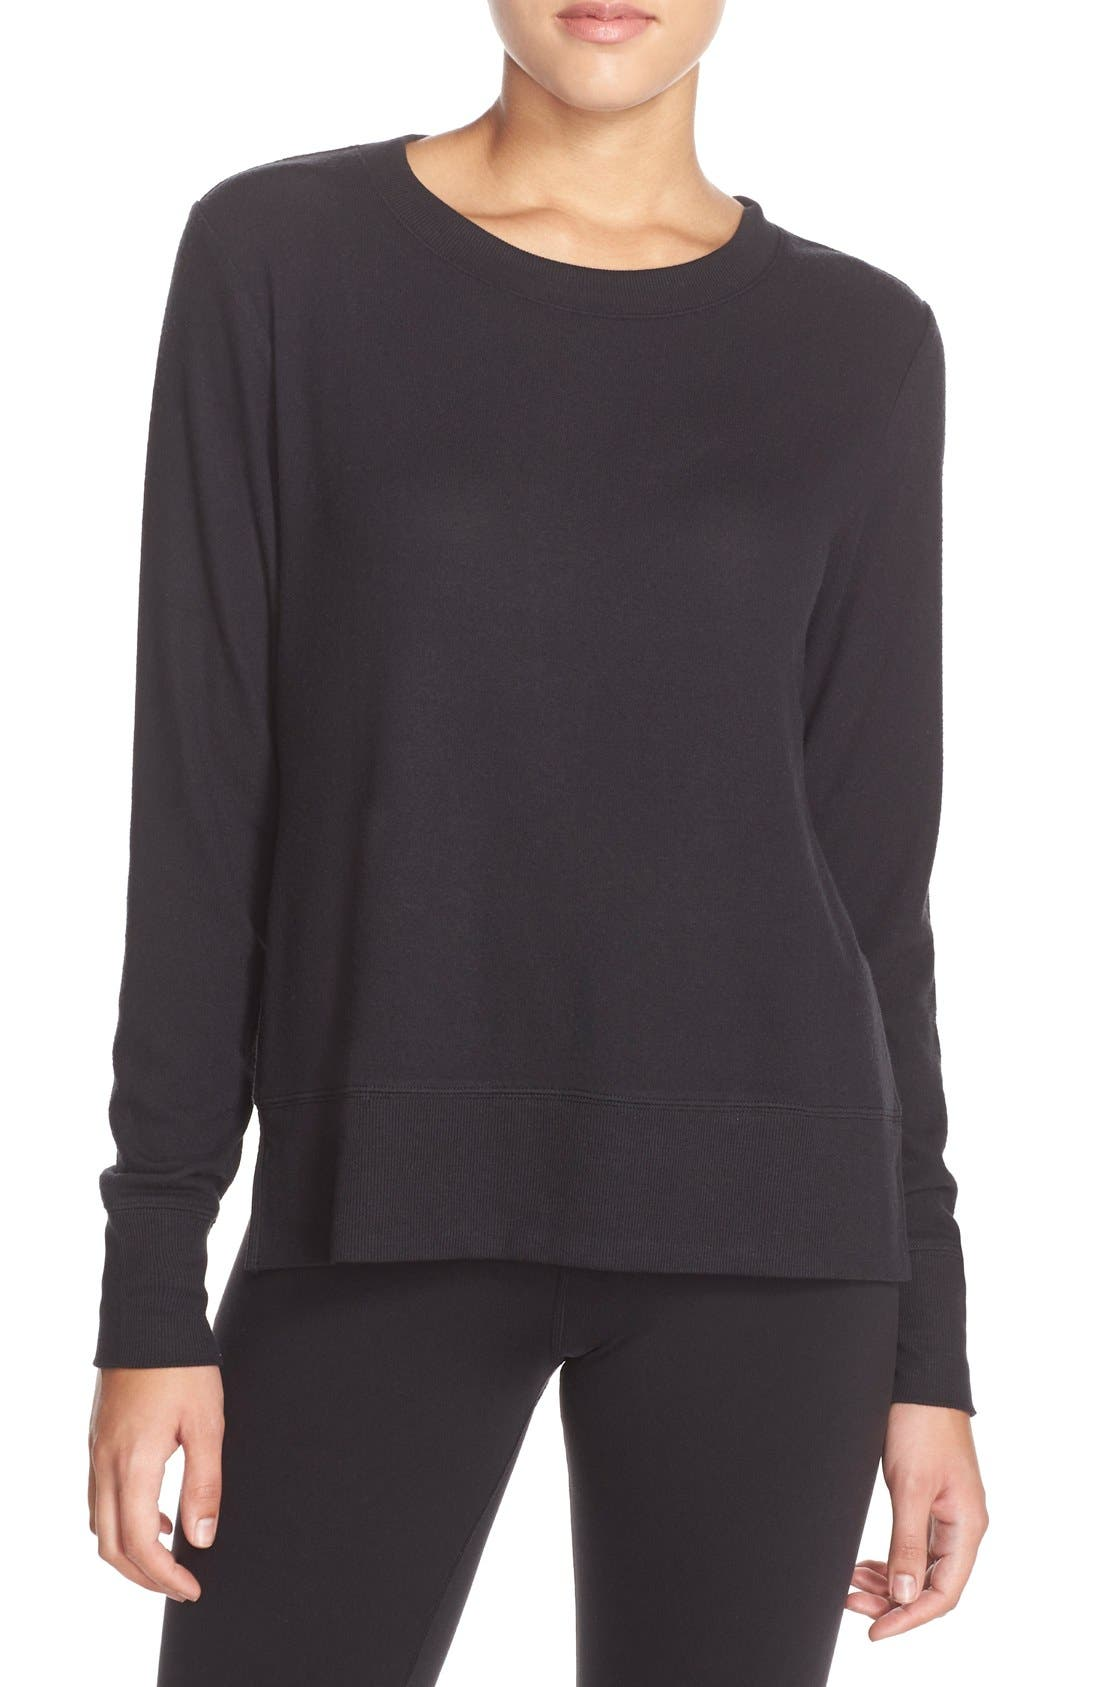 Alternate Image 1 Selected - Alo 'Glimpse' Long Sleeve Top